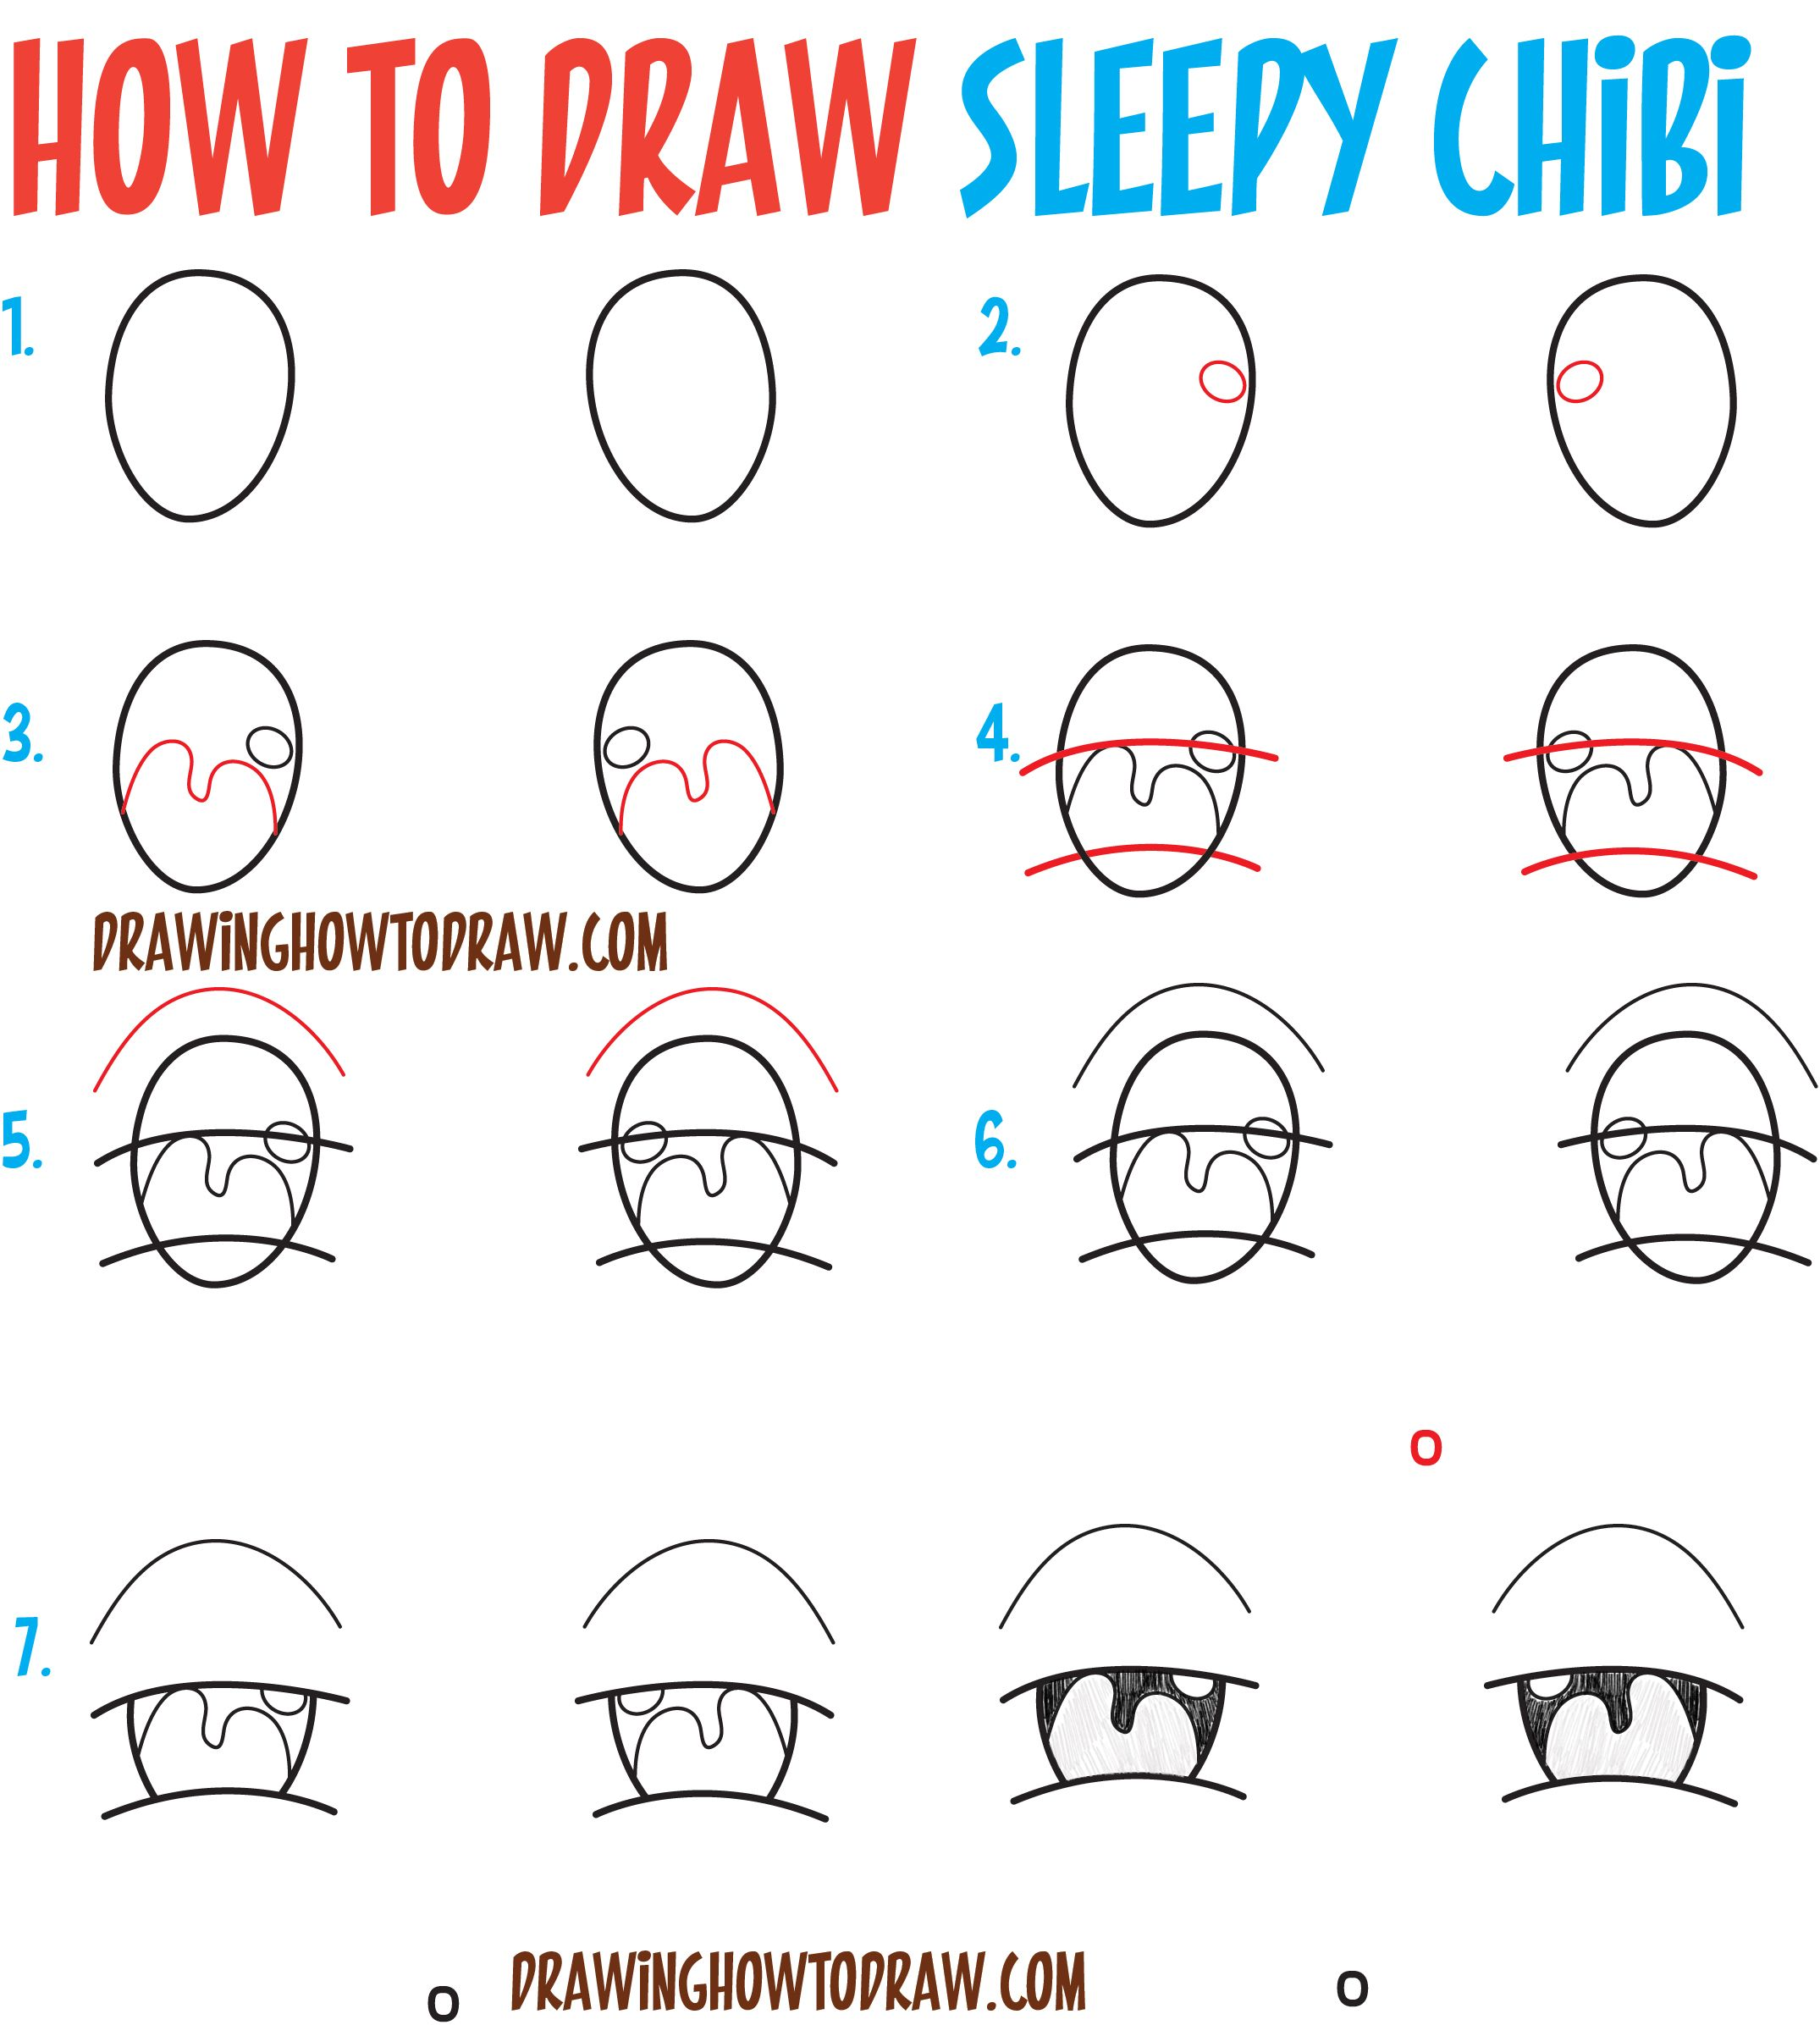 how to draw tired sleepy exhausted chibi expressions